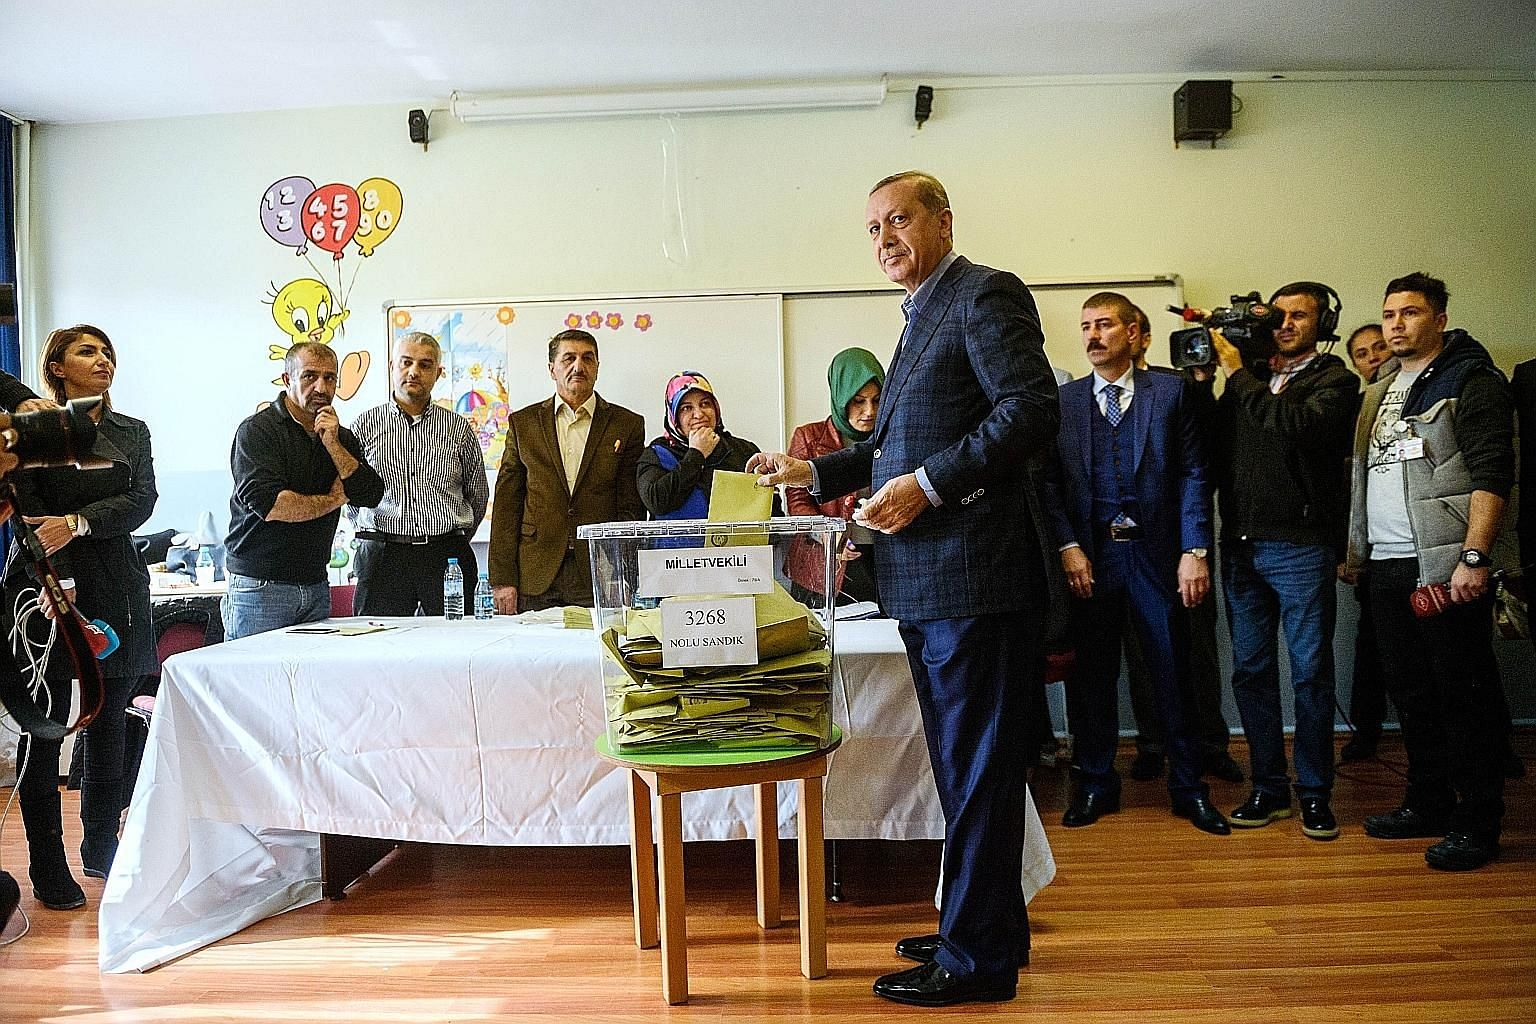 President Recep Tayyip Erdogan casting his ballot in Istanbul. Yesterday's election is one of Turkey's most crucial elections in years, with the country deeply divided in the face of surging Kurdish and Islamic violence and concerns about democracy a